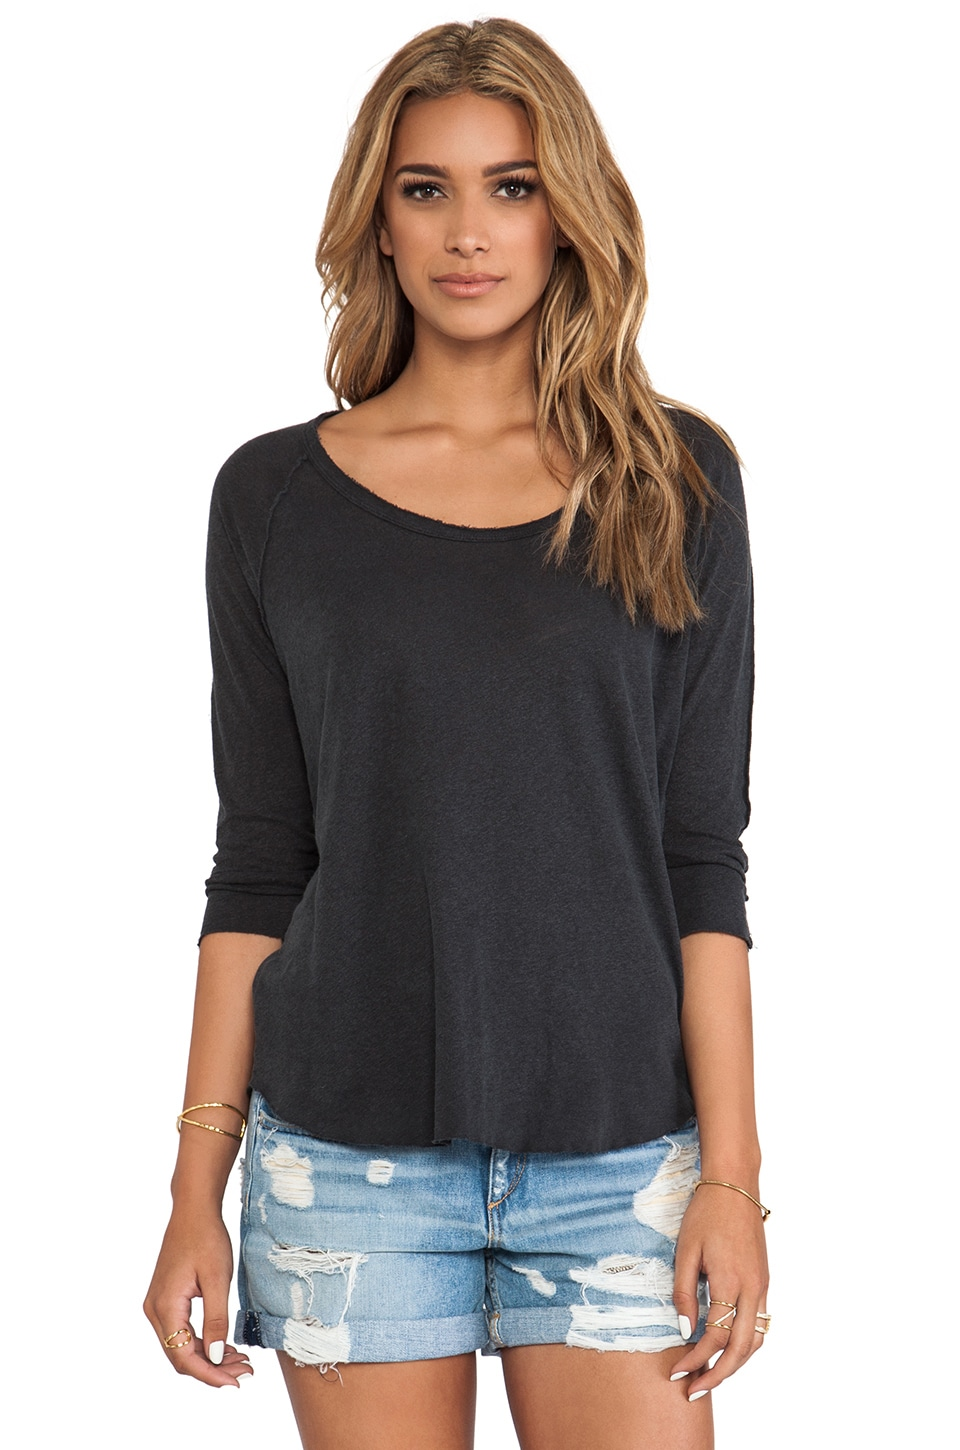 James Perse Inside Out Raglan Tee in Carbon